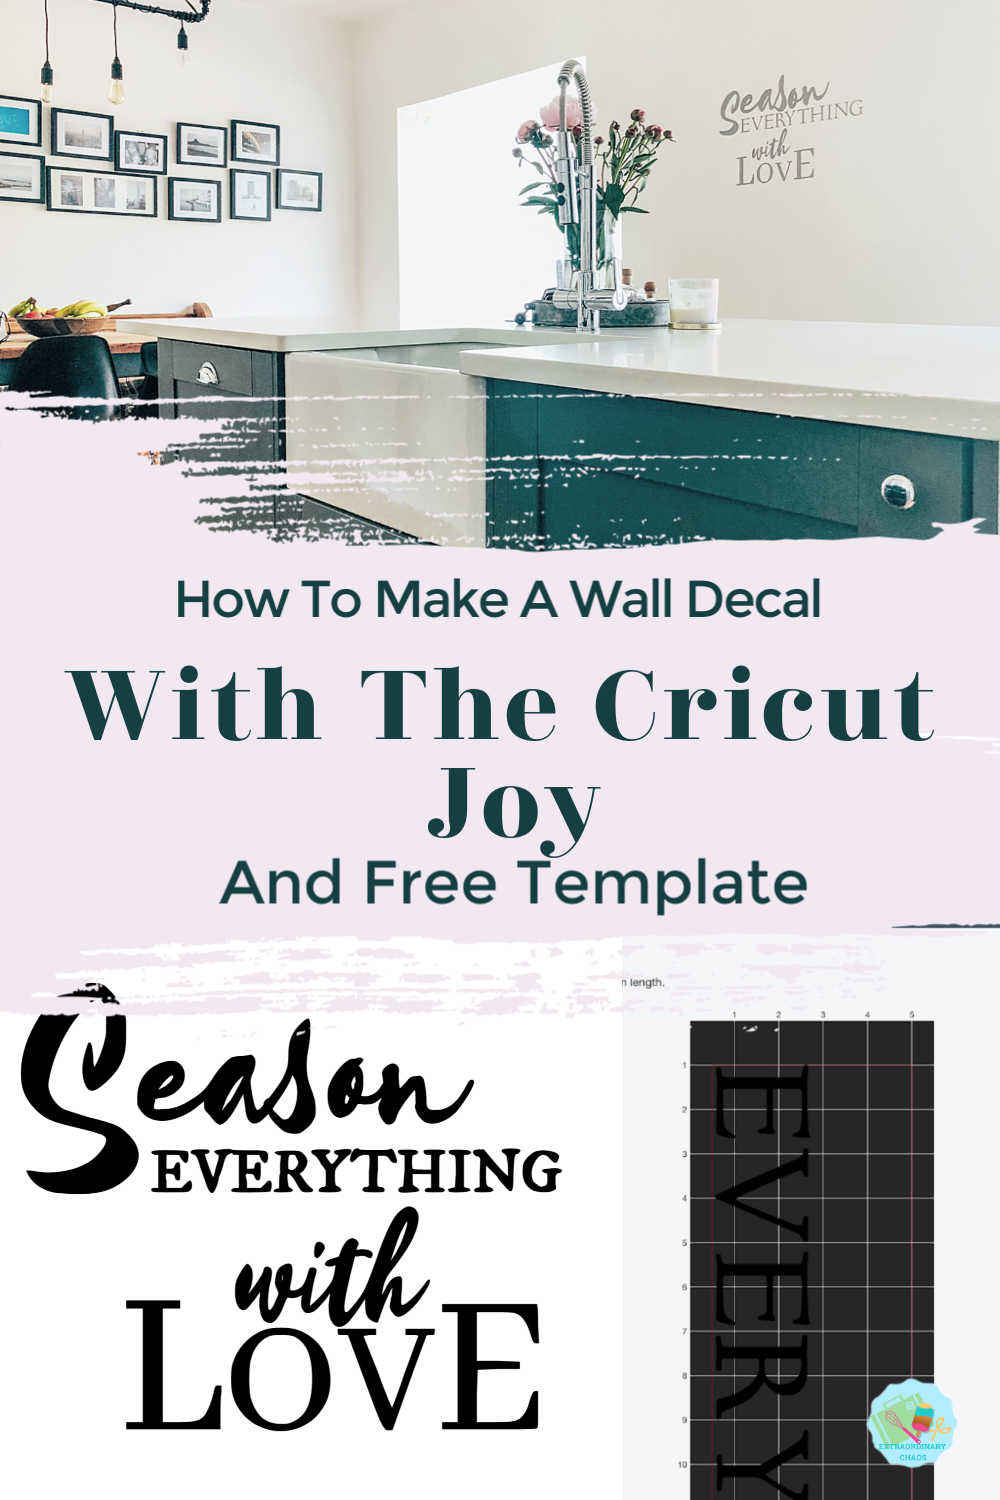 How to make a wall decal for the kitchen with the Cricut joy and free downloadable template